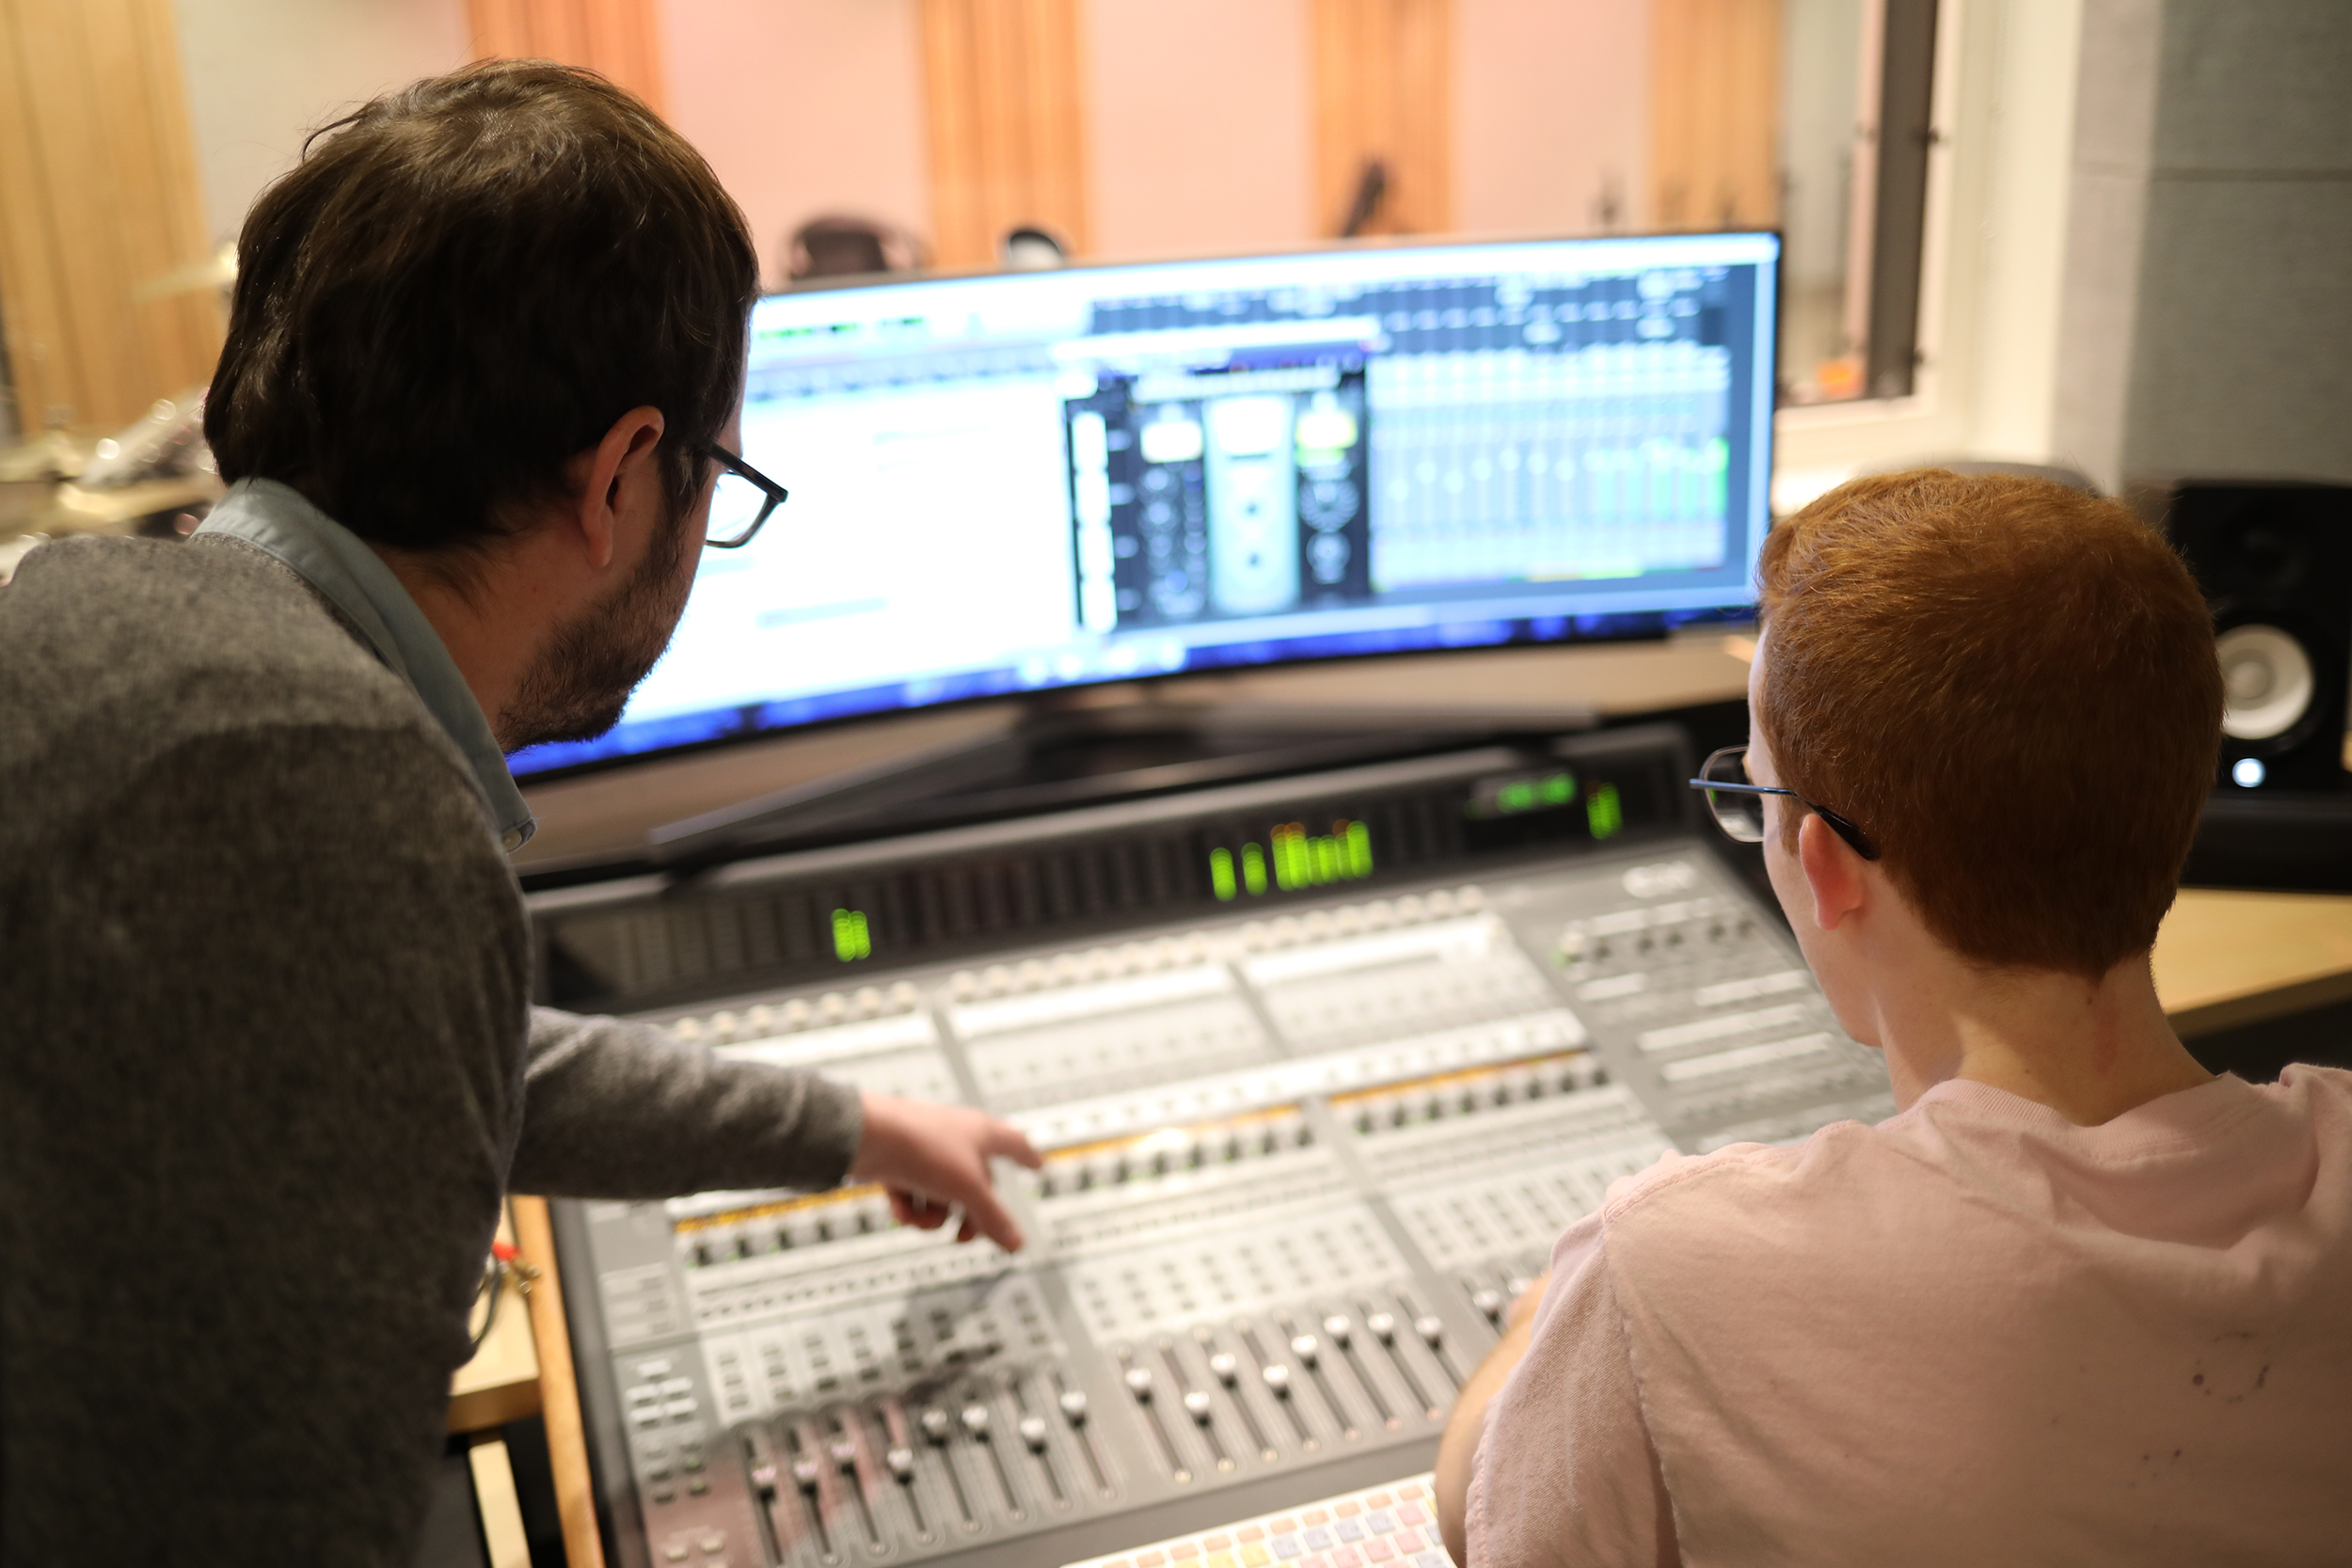 A staff member and student work together on a recording studio panel.